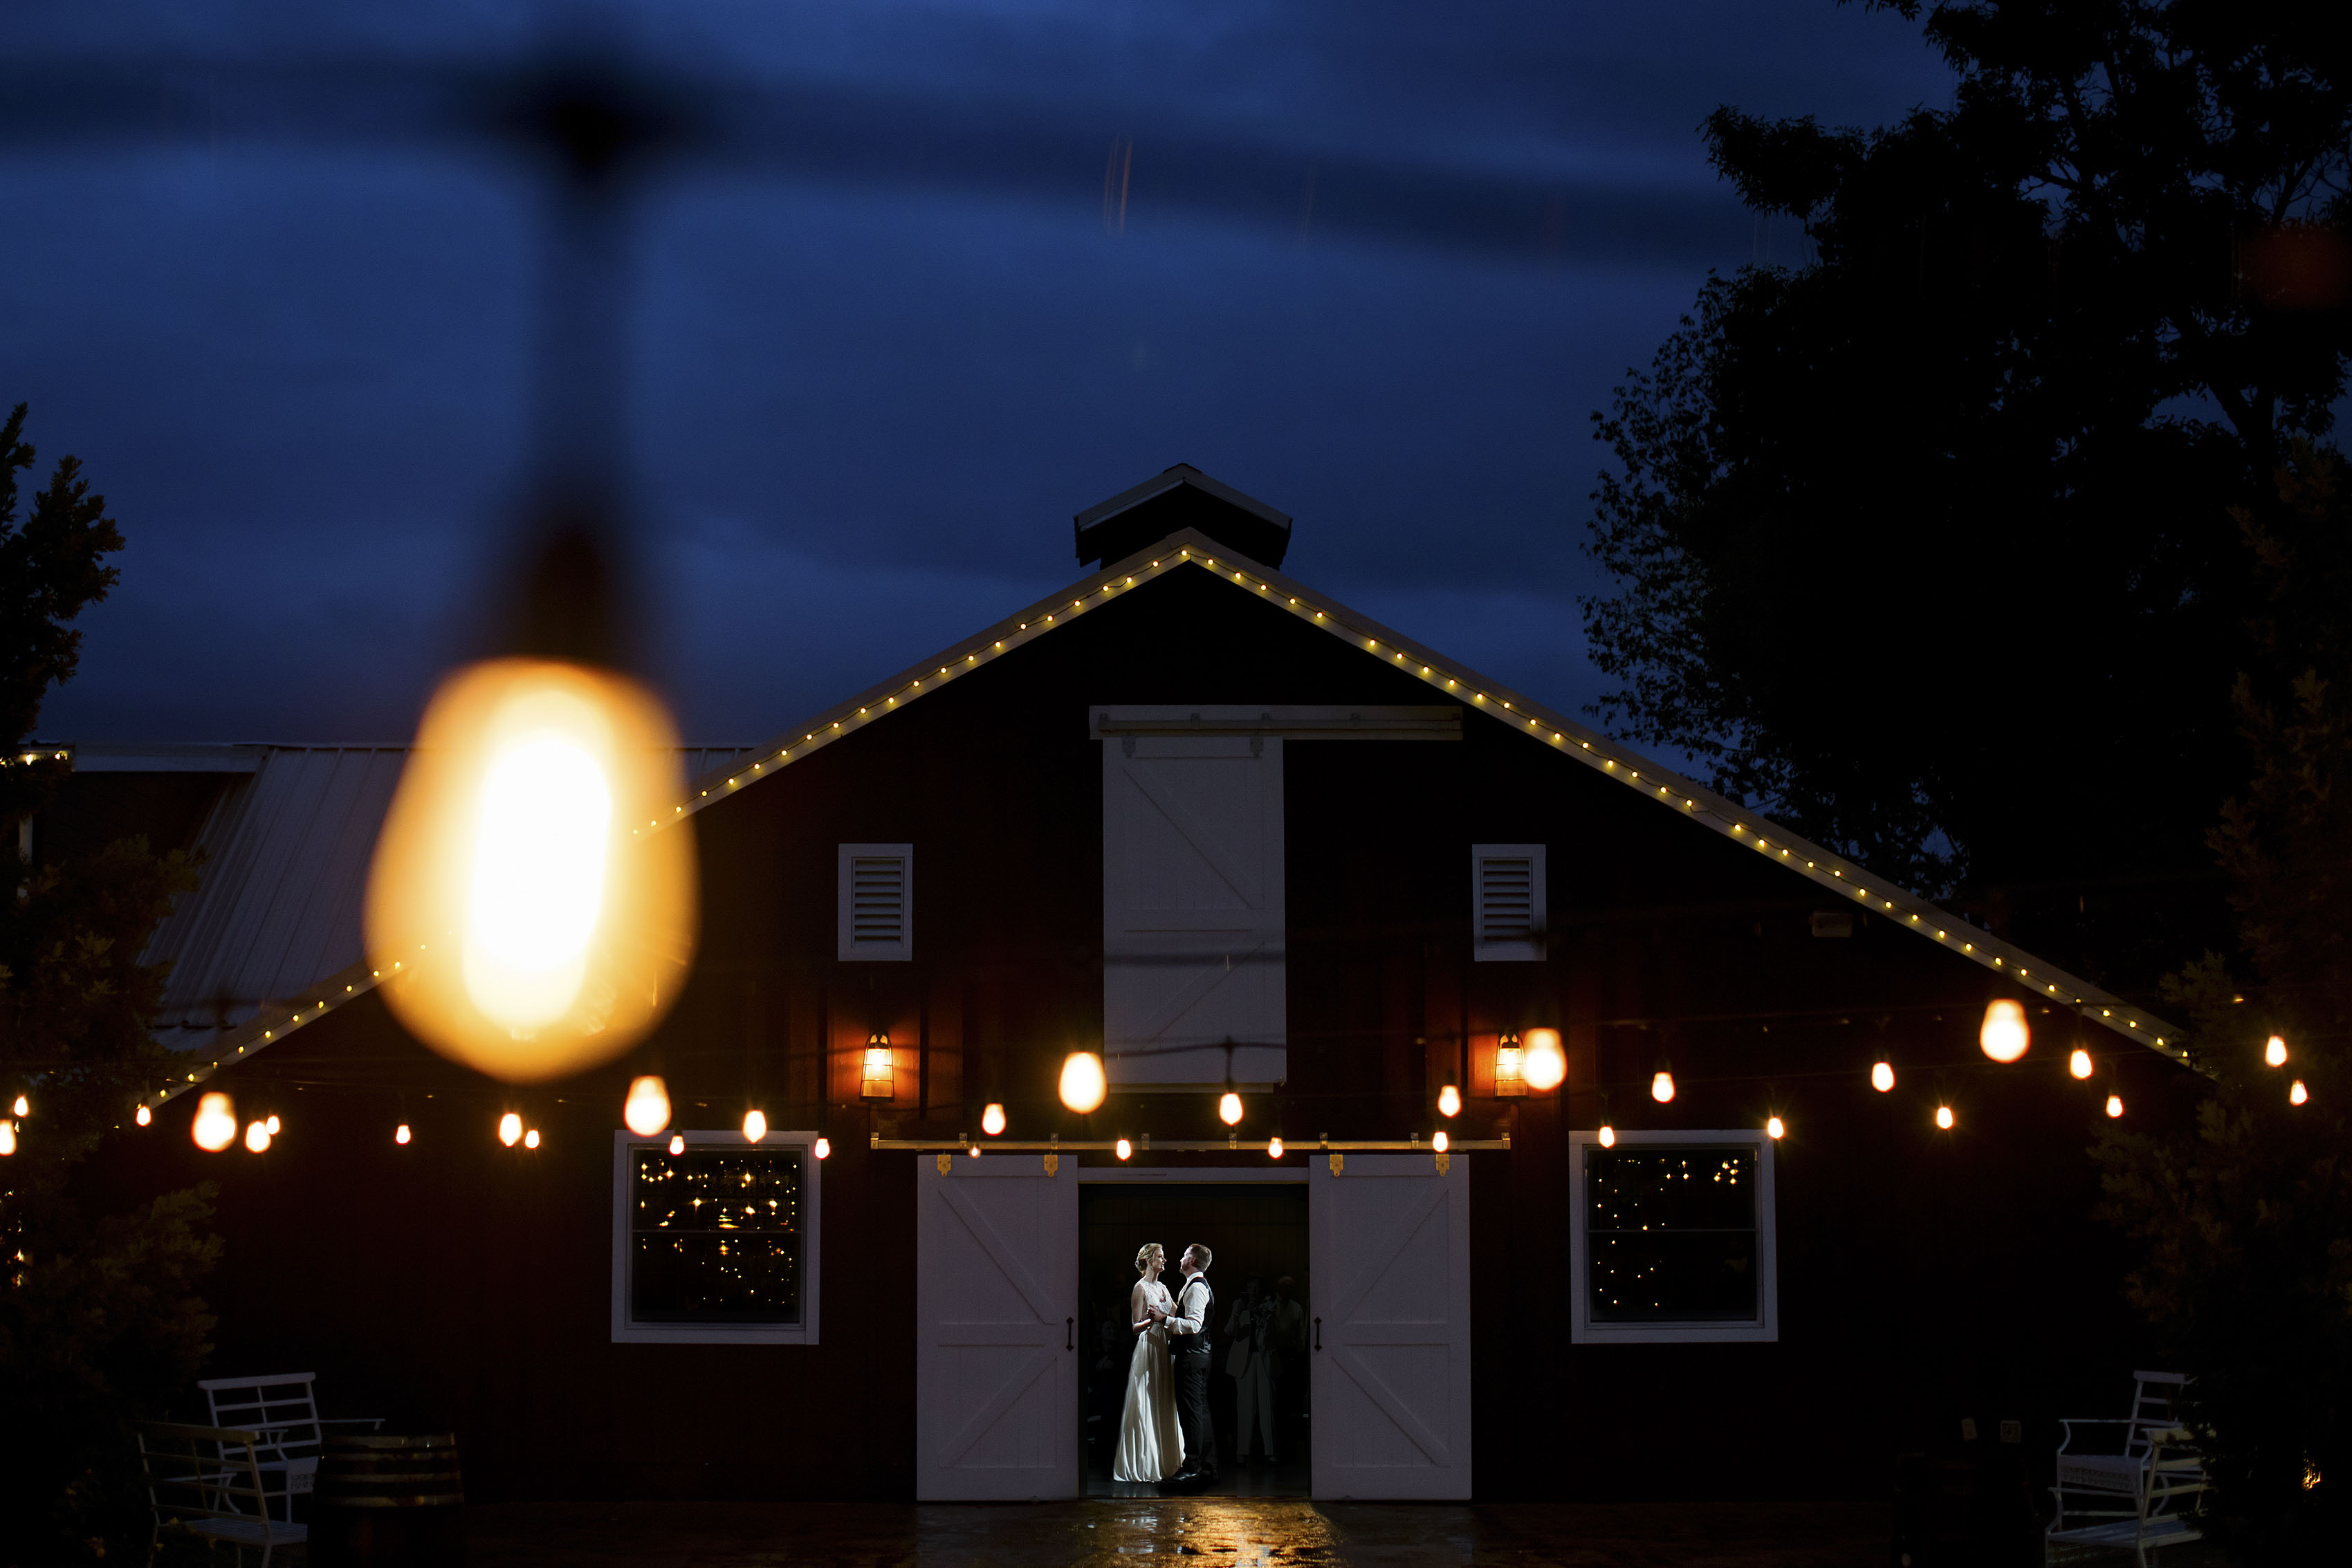 the bride and groom share their first dance at the wedding reception during twilight as market lights shine at the barn at raccoon creek